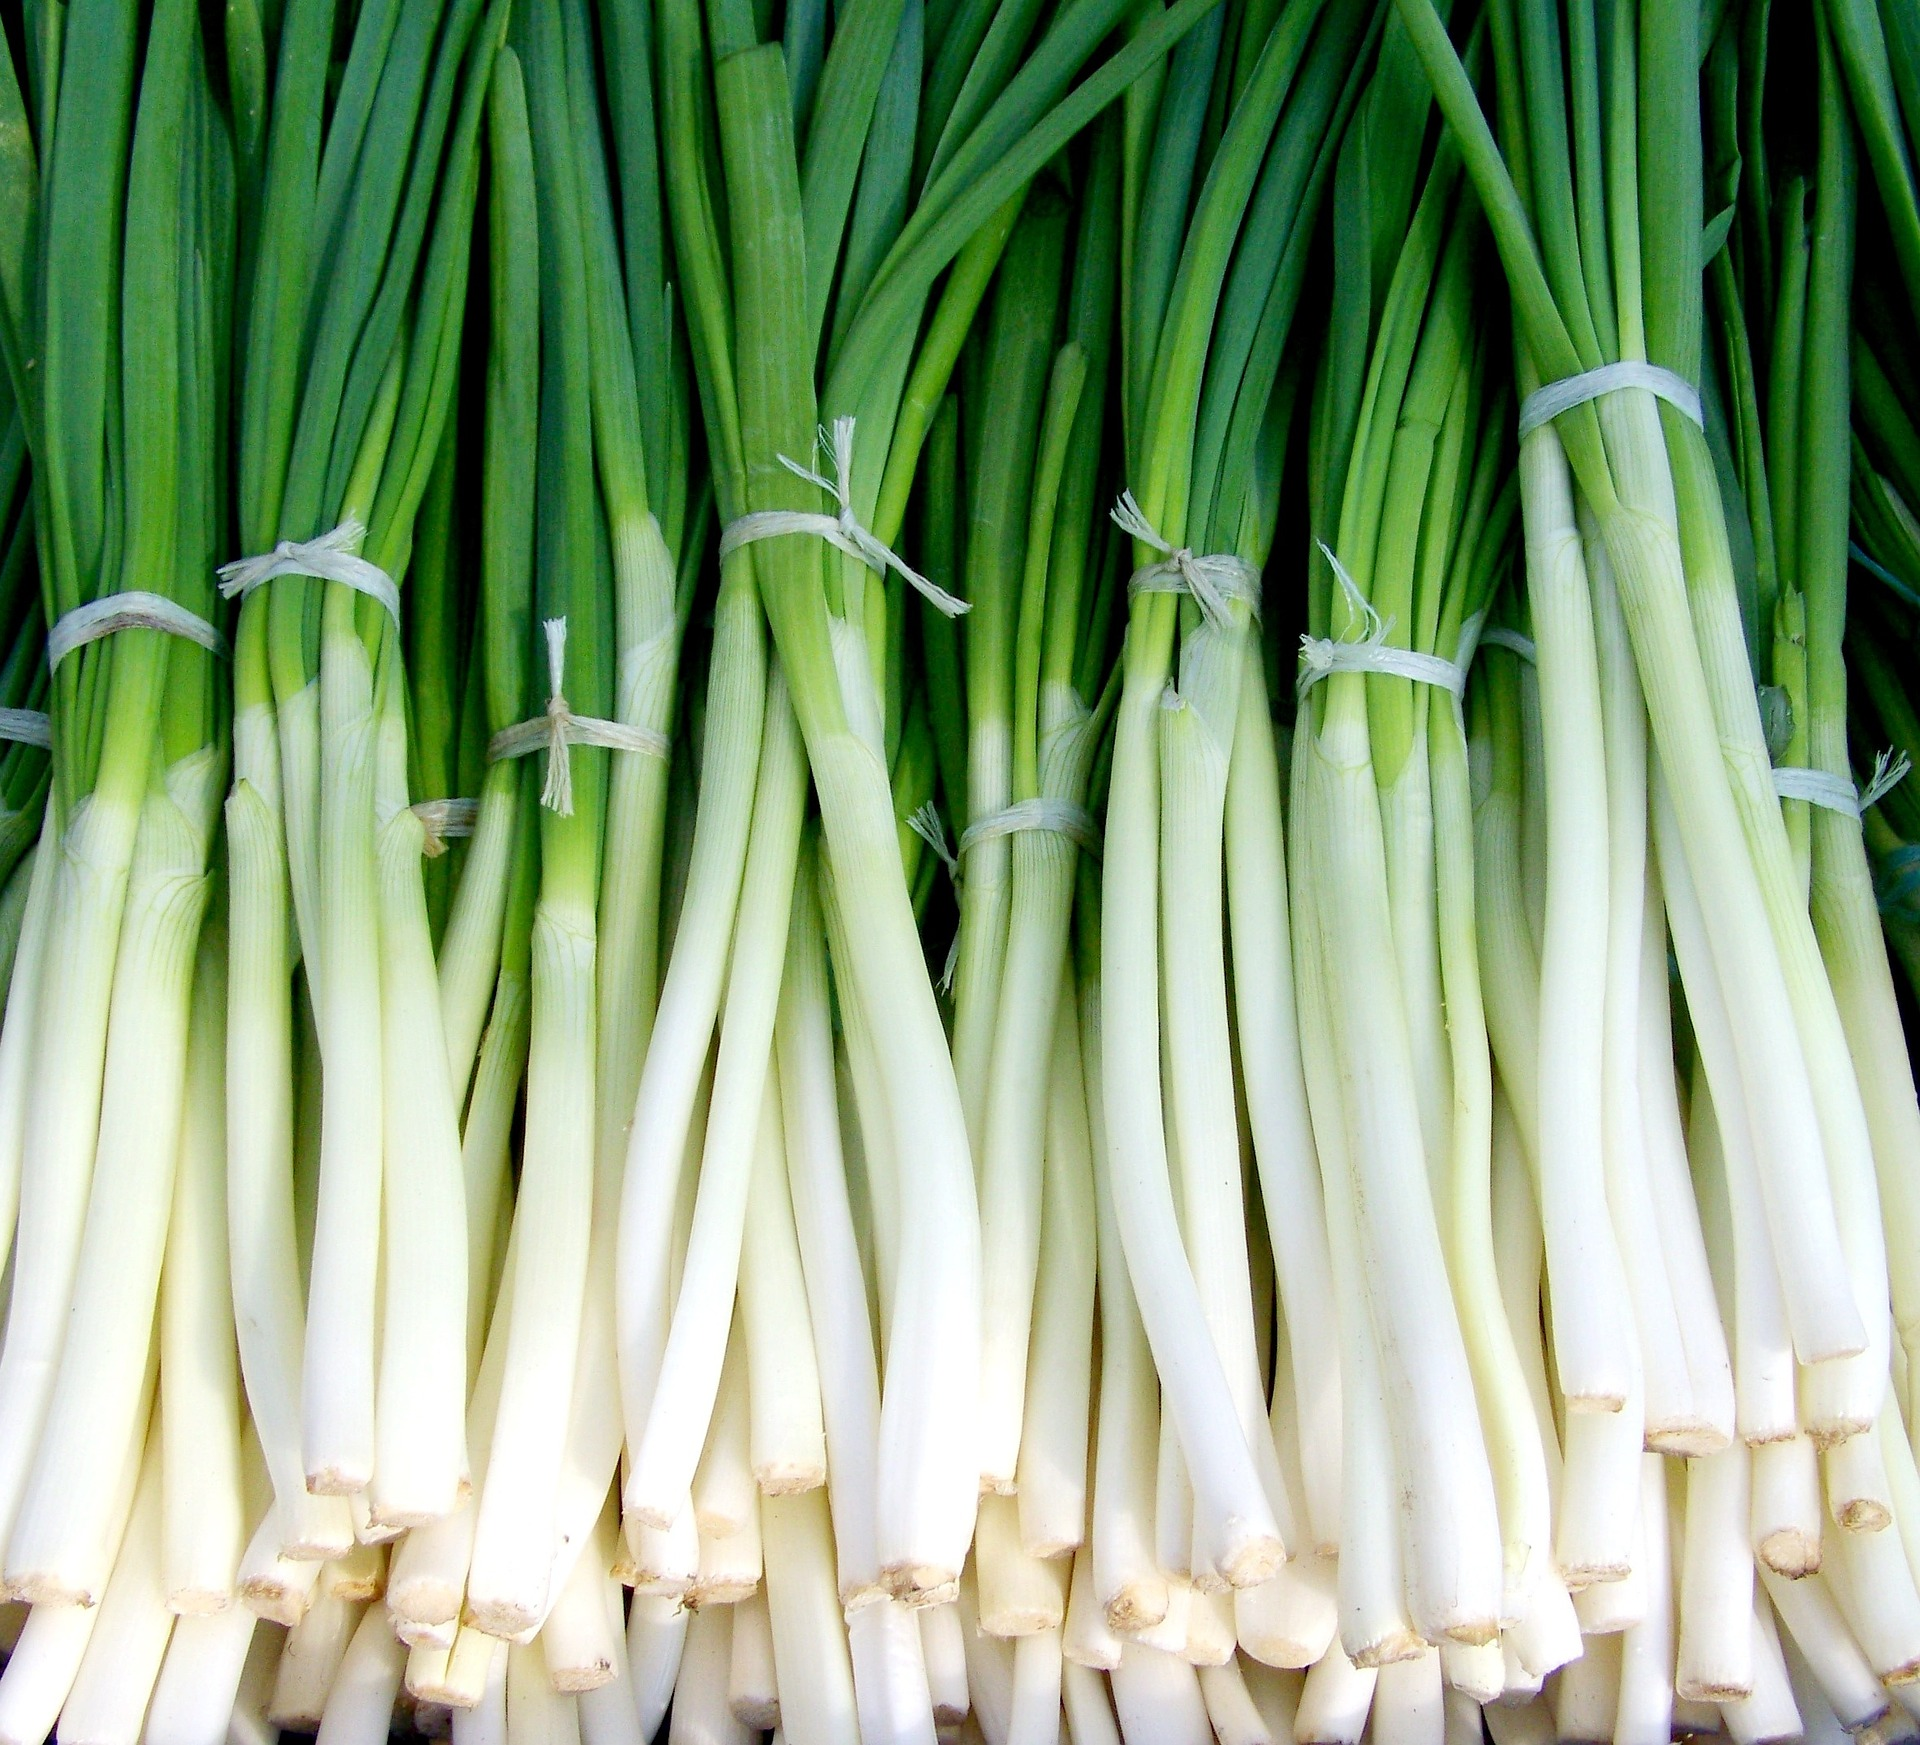 Bunches of green onions on a table.